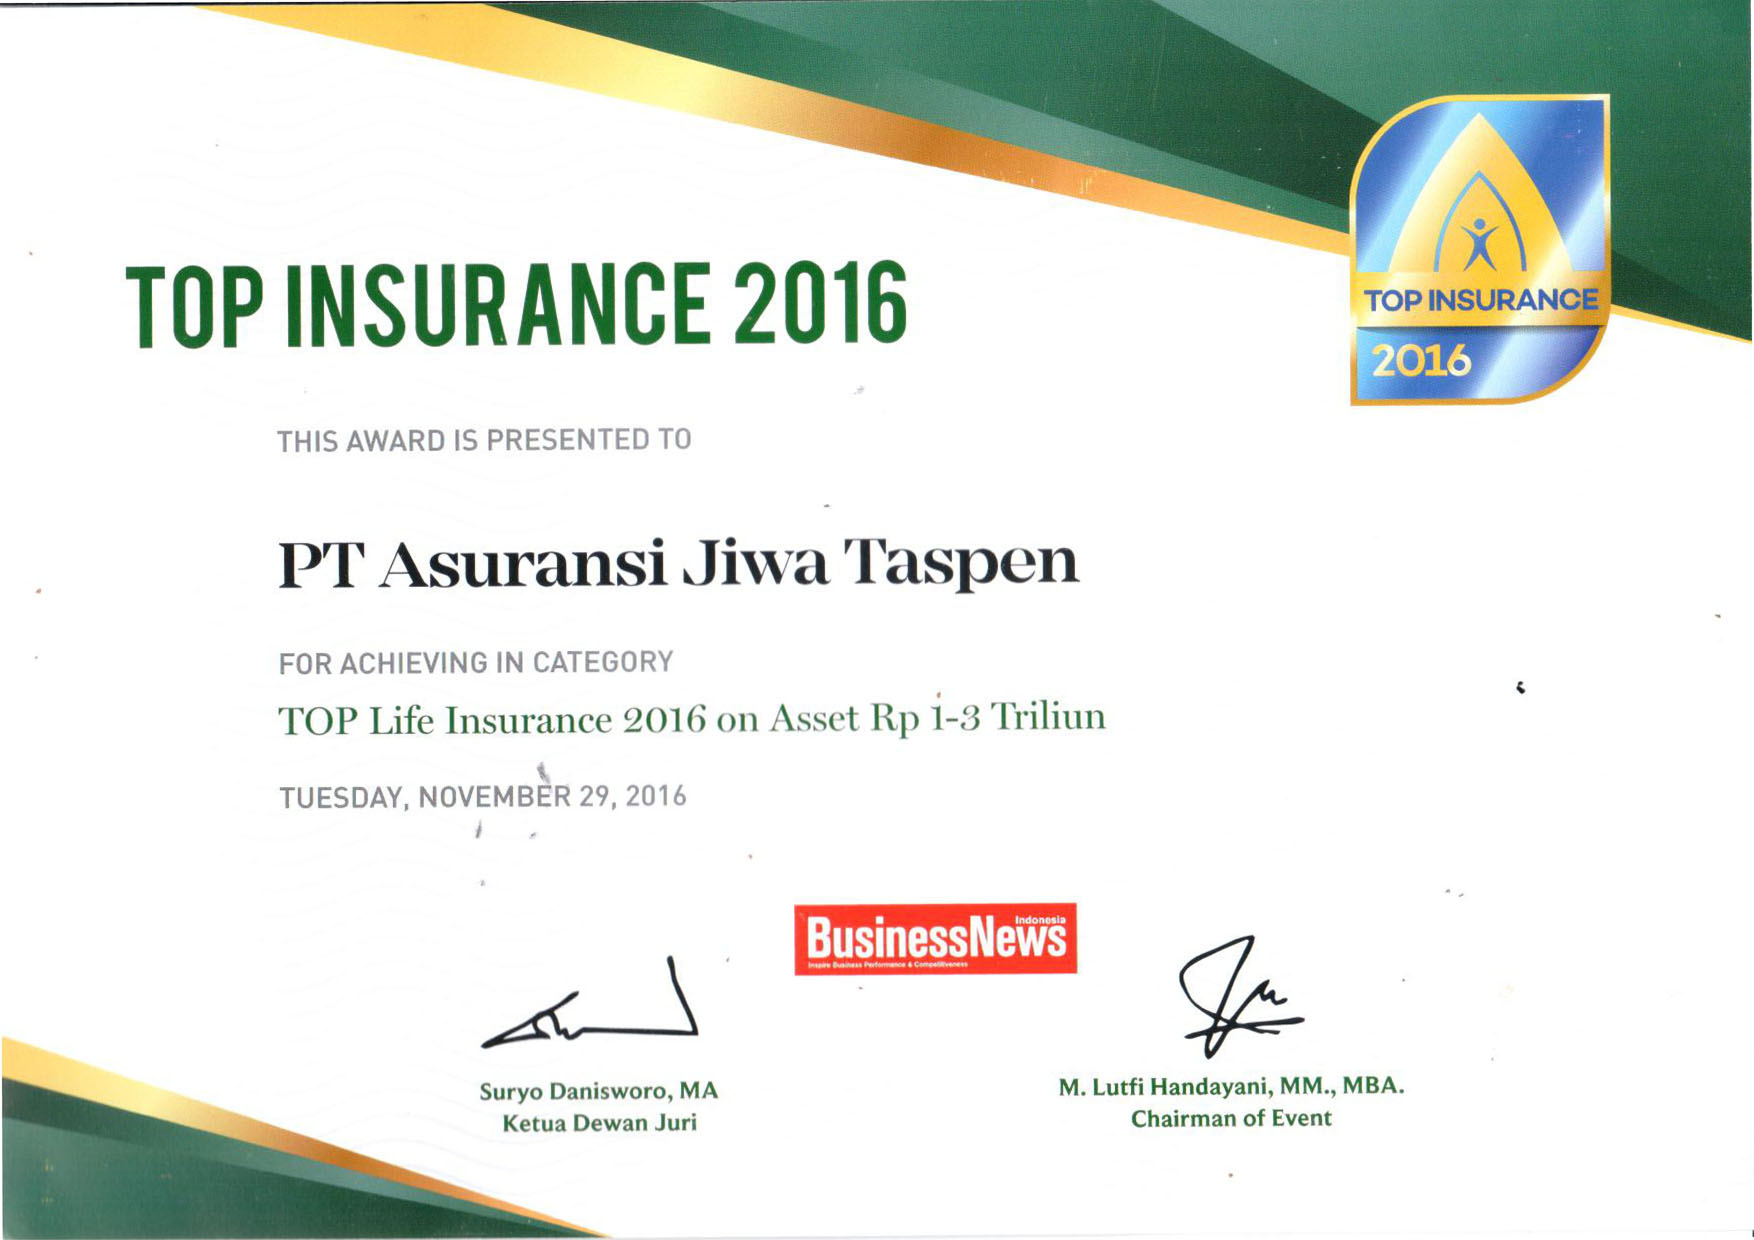 Top Life Insurance 2016